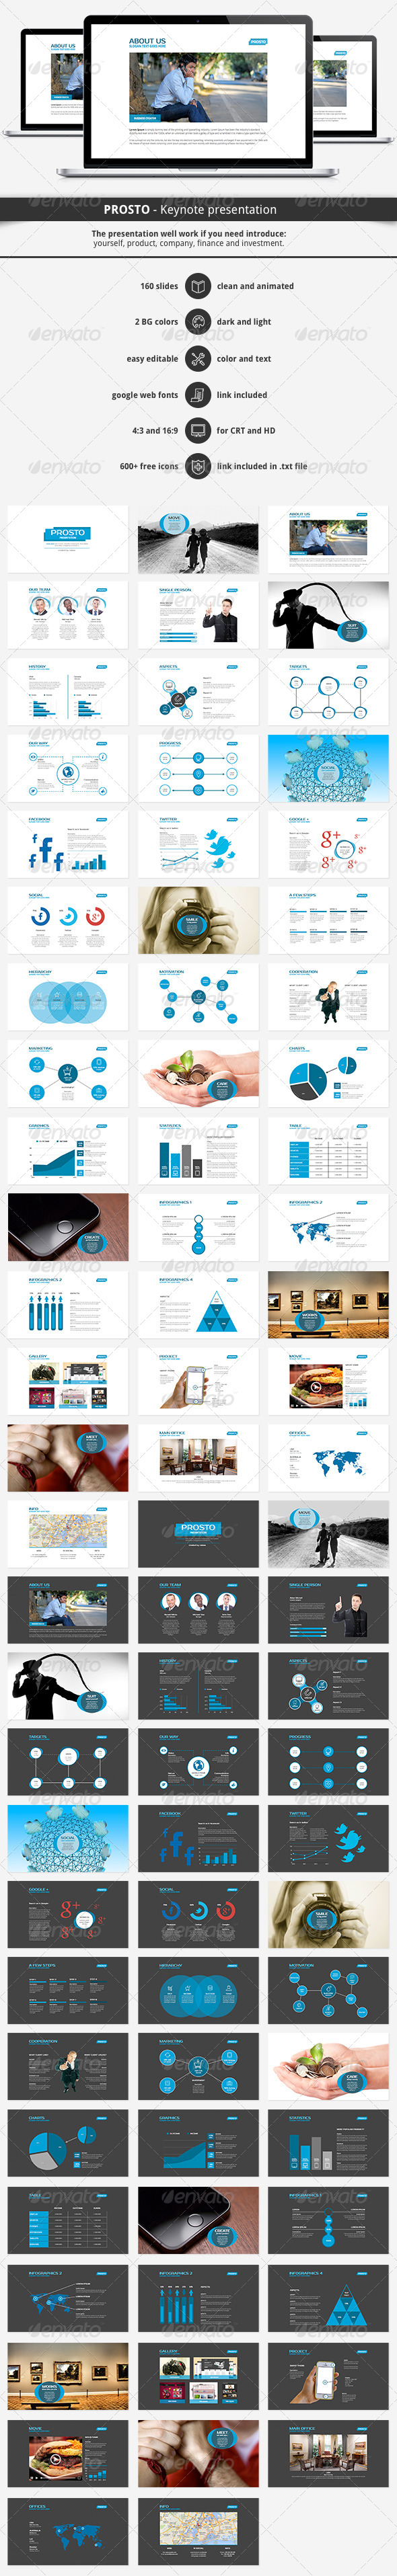 GraphicRiver Prosto Keynote Presentation 6194211